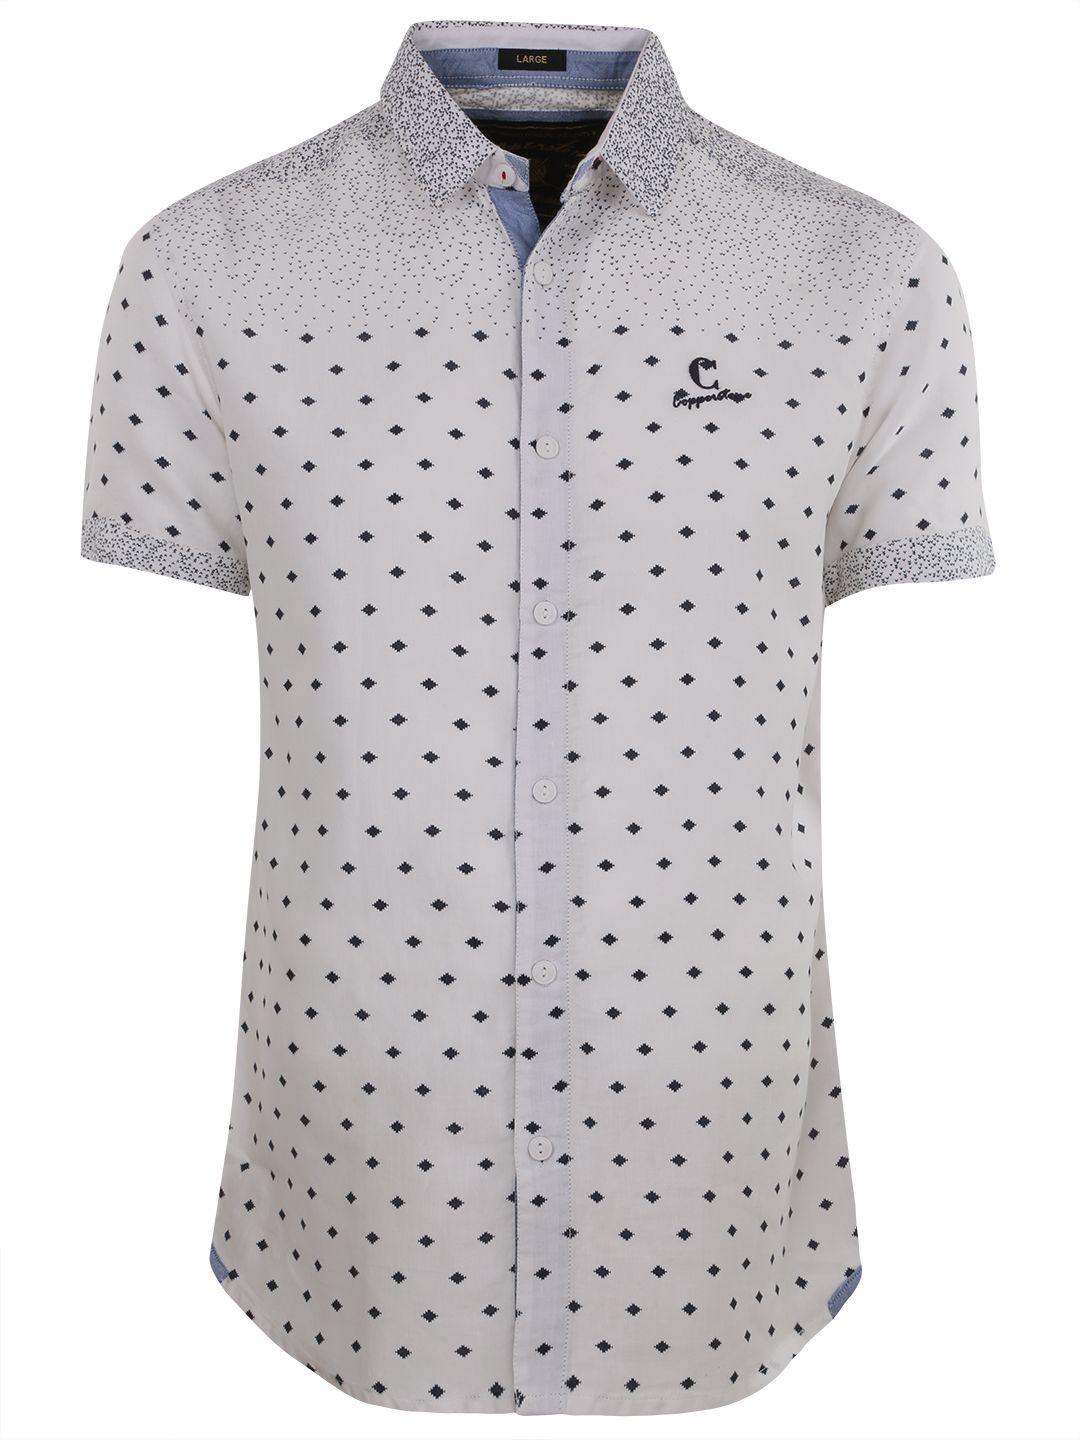 Copperstone Printed White Slim Fit Cotton Shirt. Mens Shirts ...